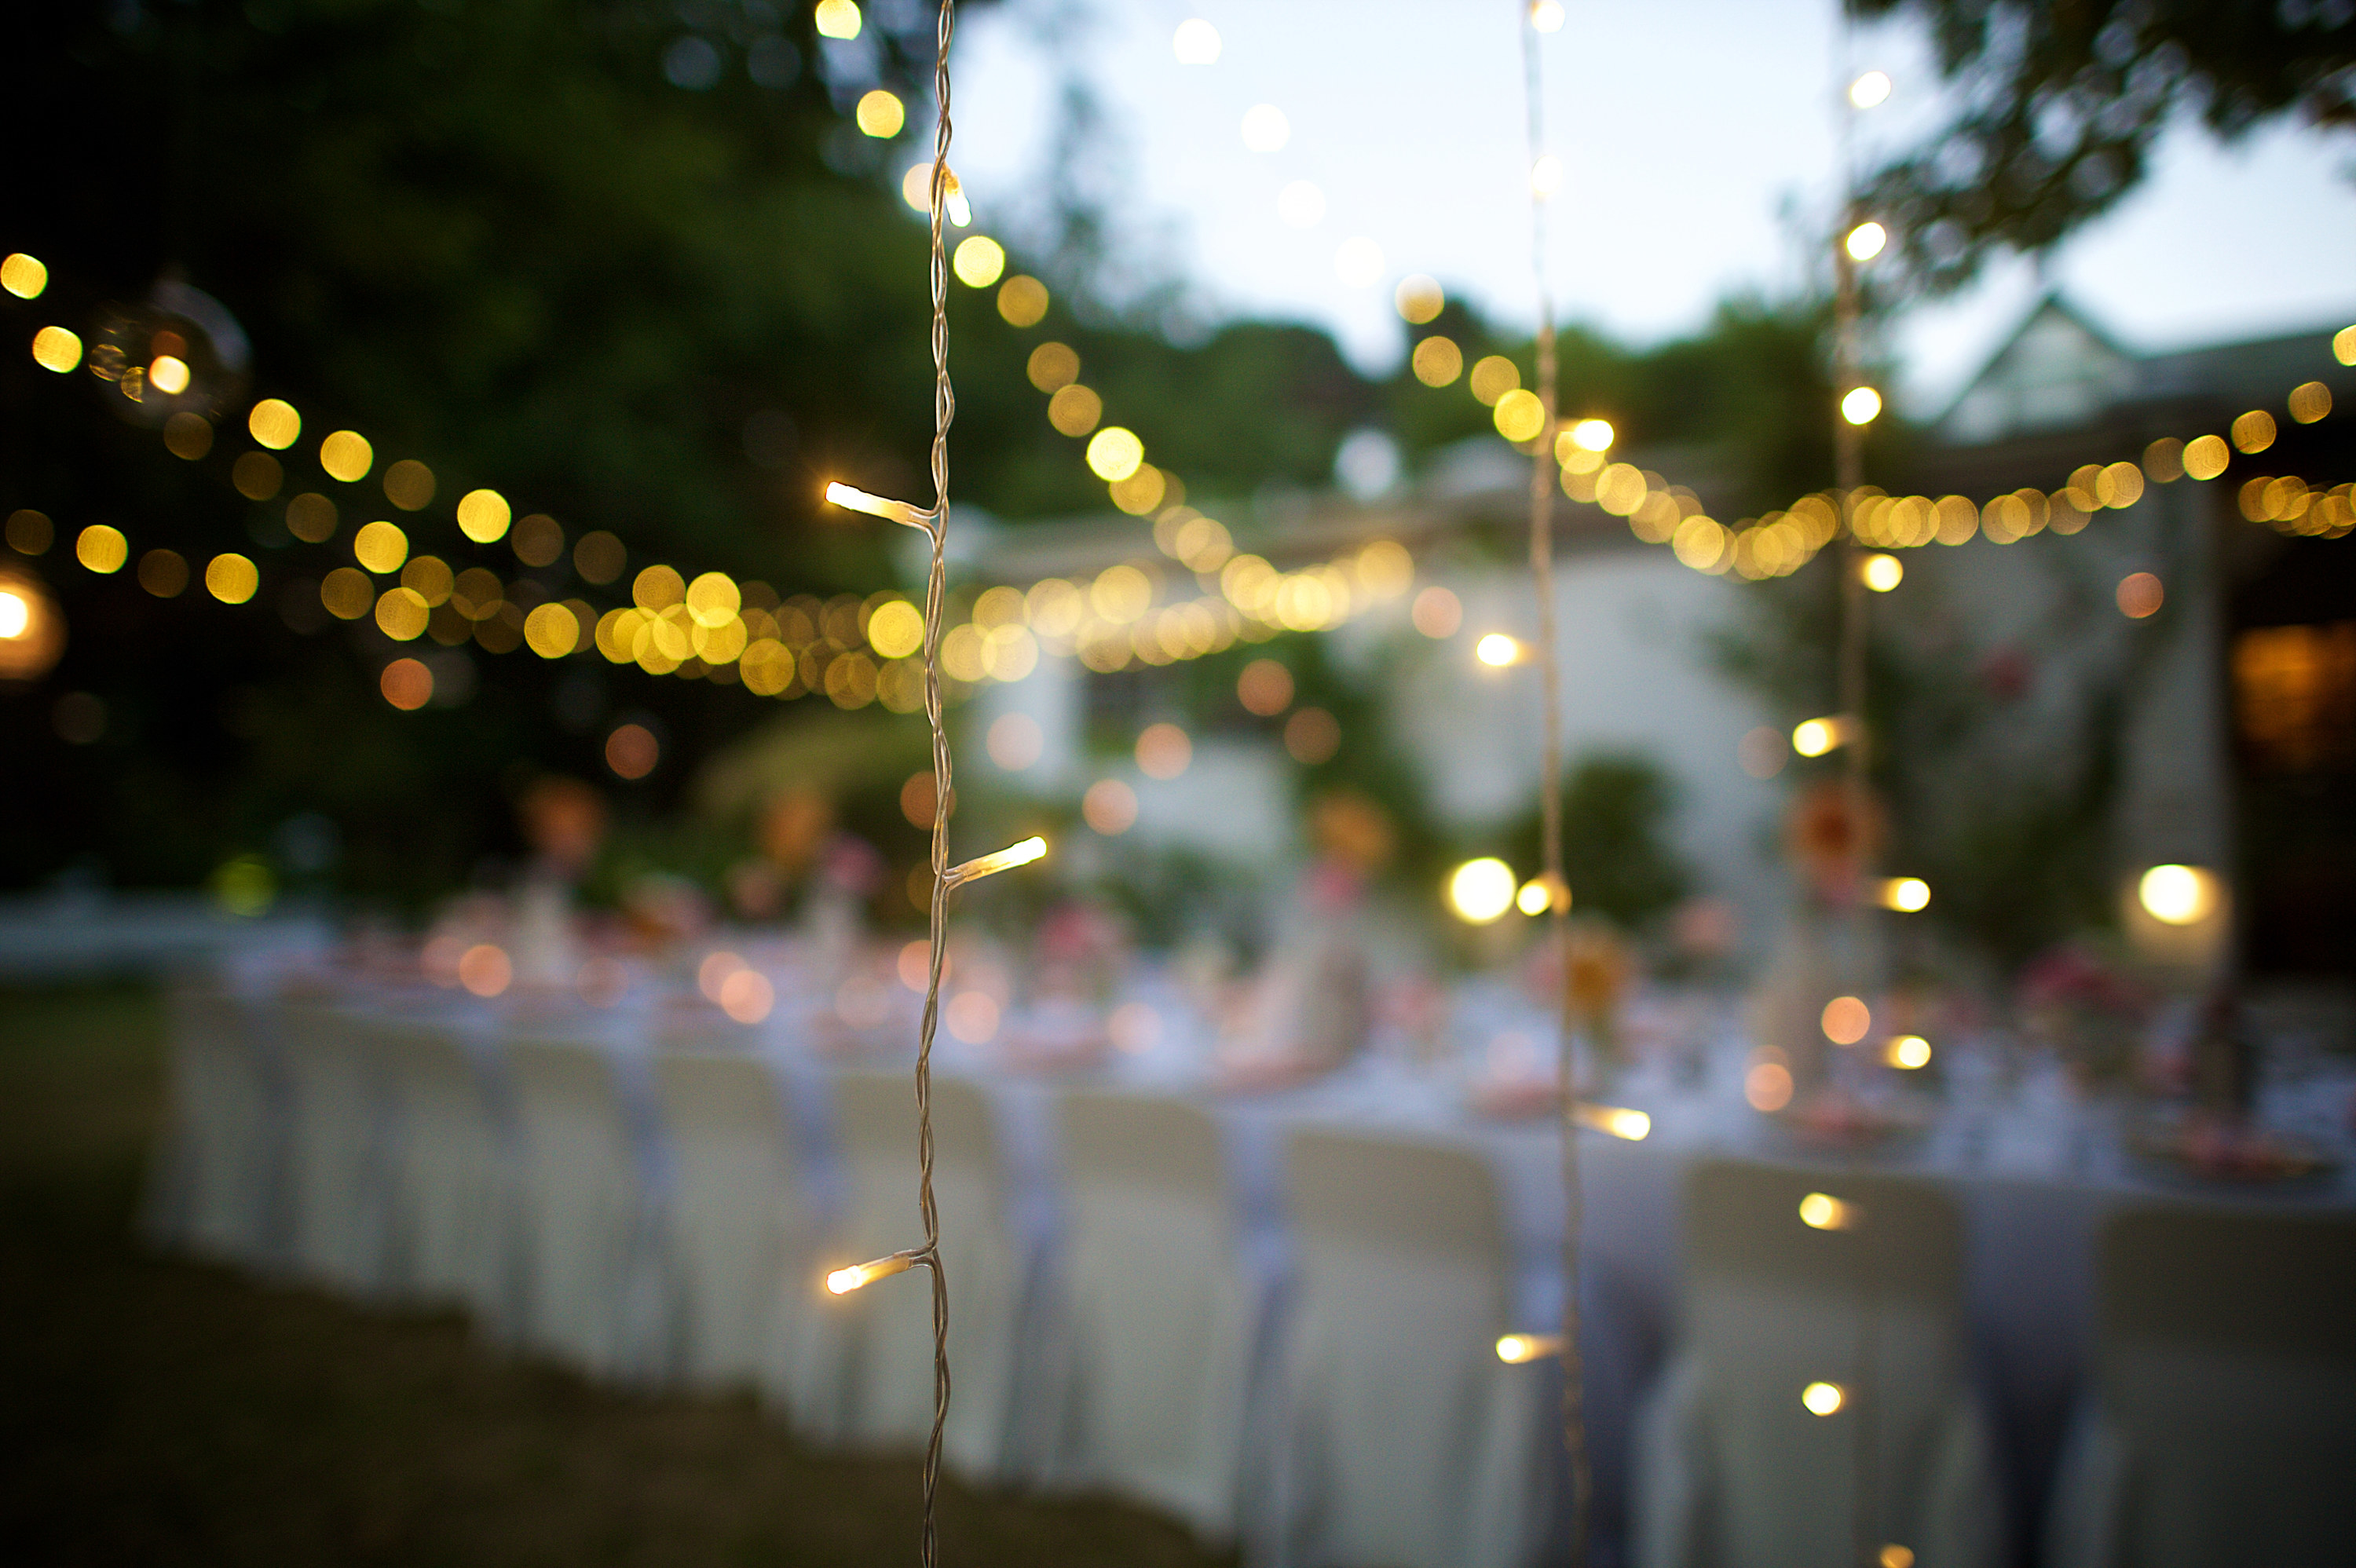 A blurry photo of a wedding table with fairy lights strung over it